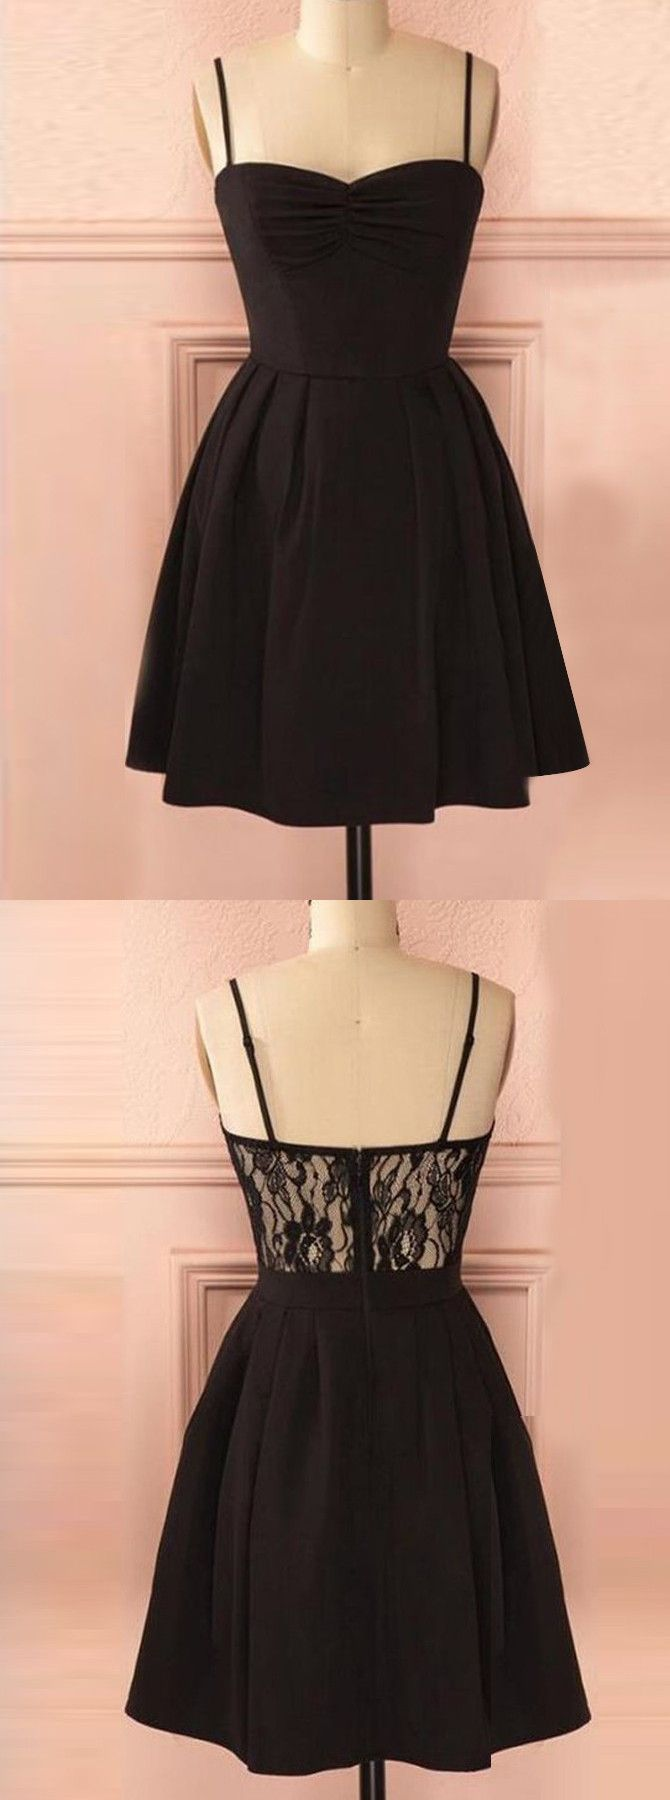 short black dresses,black homecoming dresses,little black dresses,lace homecoming dresses